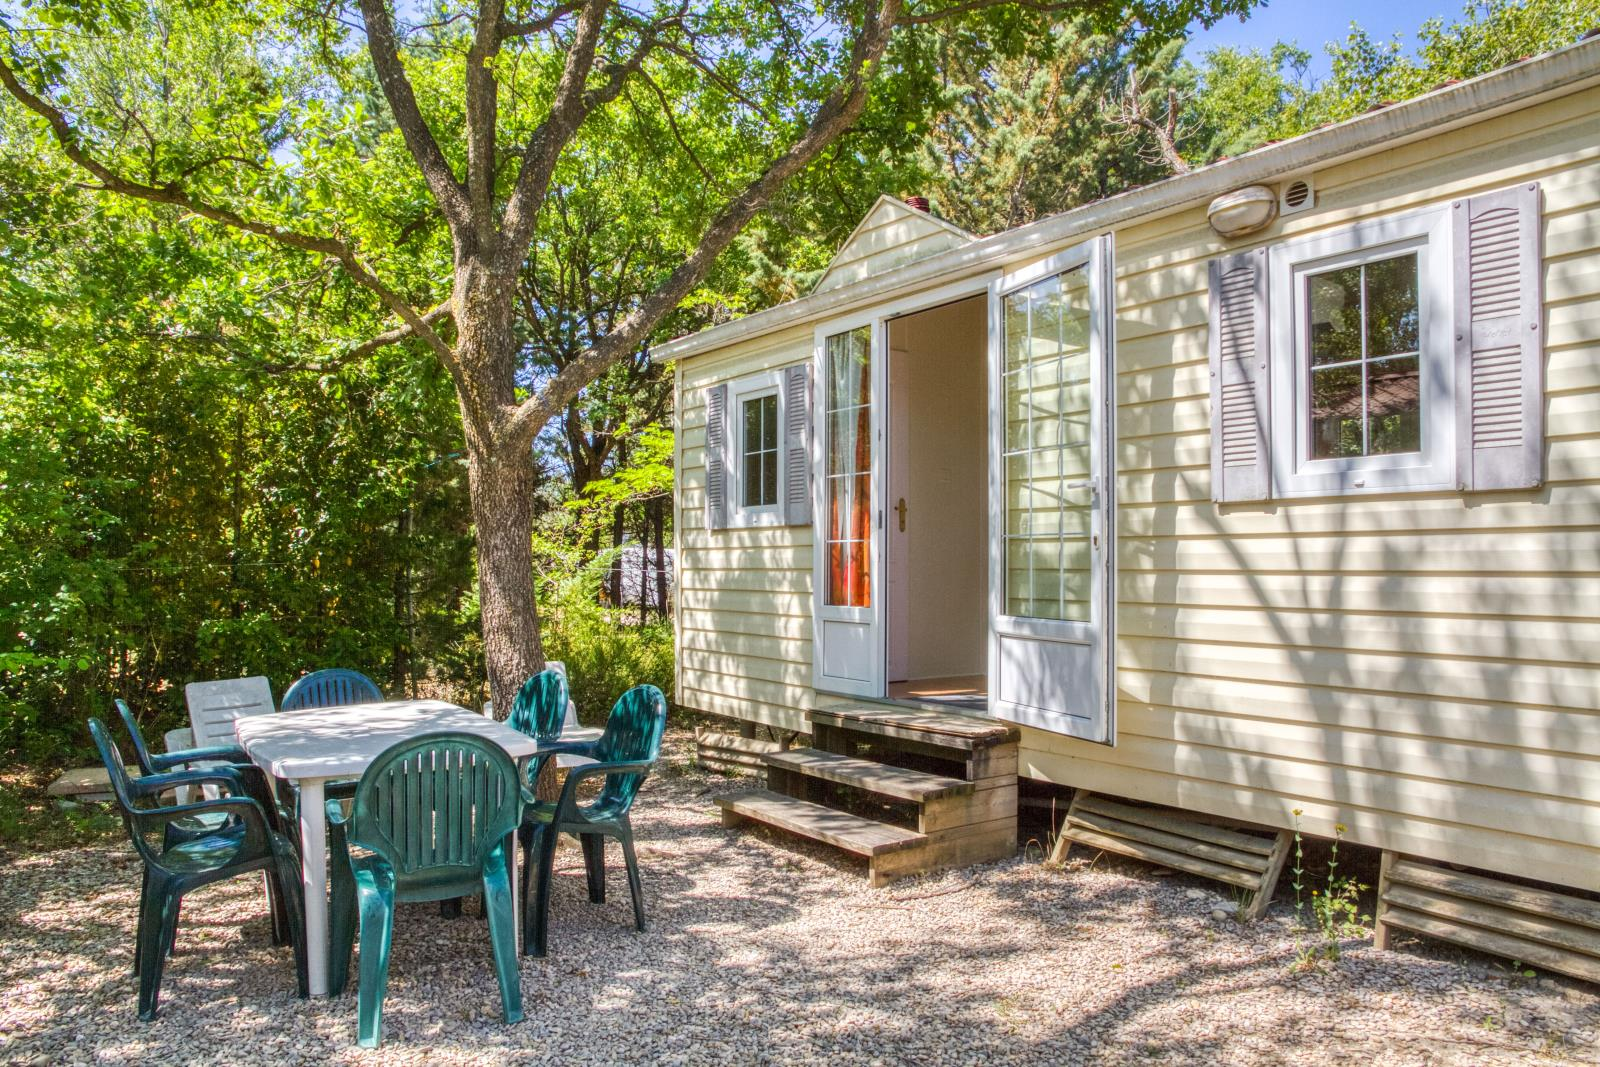 Accommodation - Mobile-Home 2 Bedrooms 28 M² - Camping Les Rives de l'Aygues